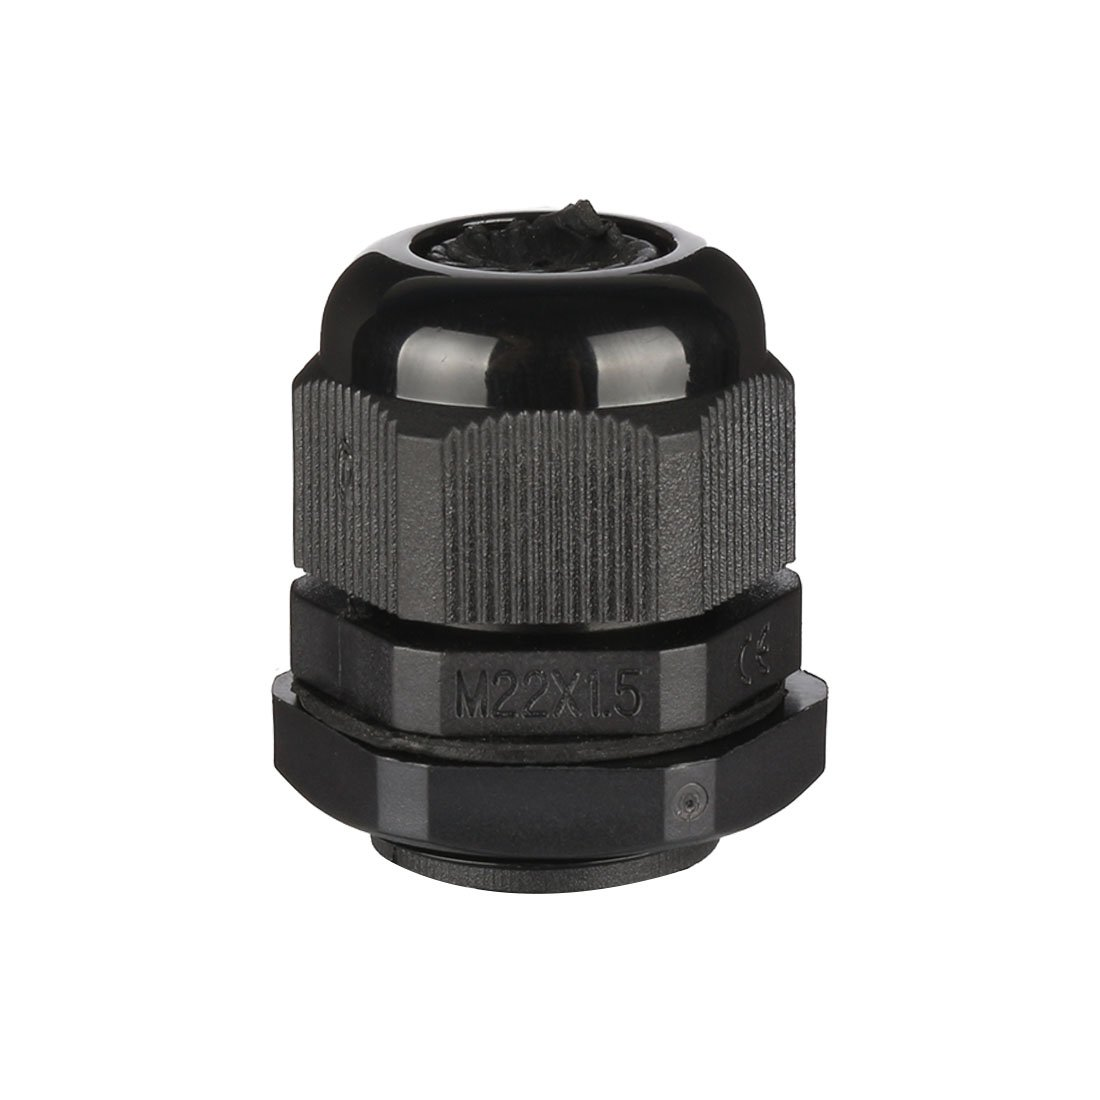 uxcell 20 Pcs M20 Waterproof IP68 Nylon Cable Gland Joint Adjustable Locknut for 6mm-12mm Dia Cable Wire